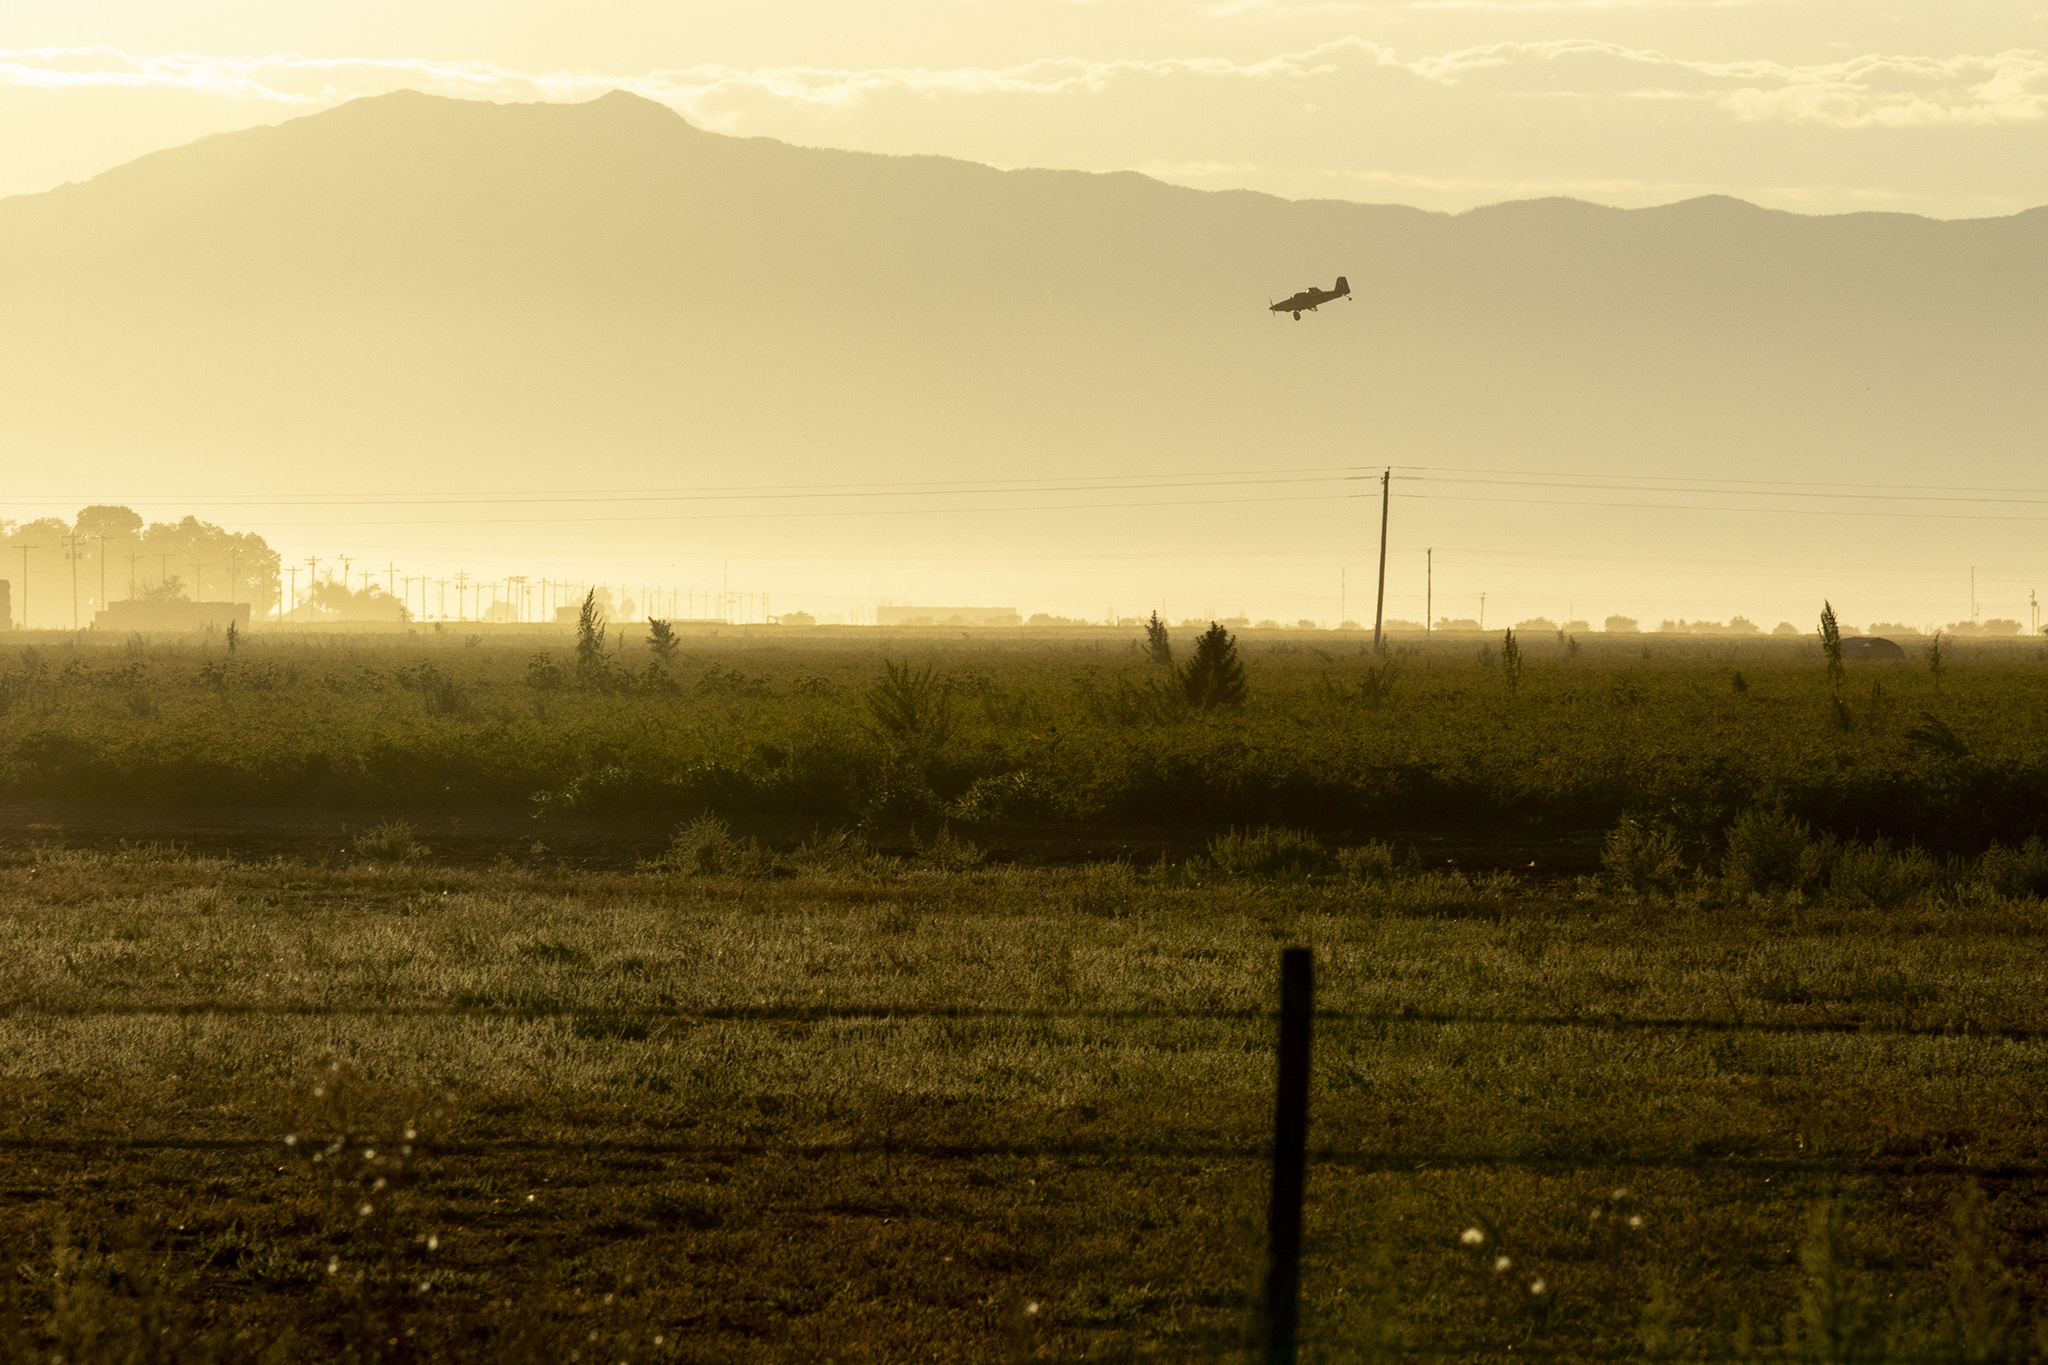 A crop duster flies over one of Dave Warsh's fields in the San Luis Valley town of Center. Aug. 26, 2021.